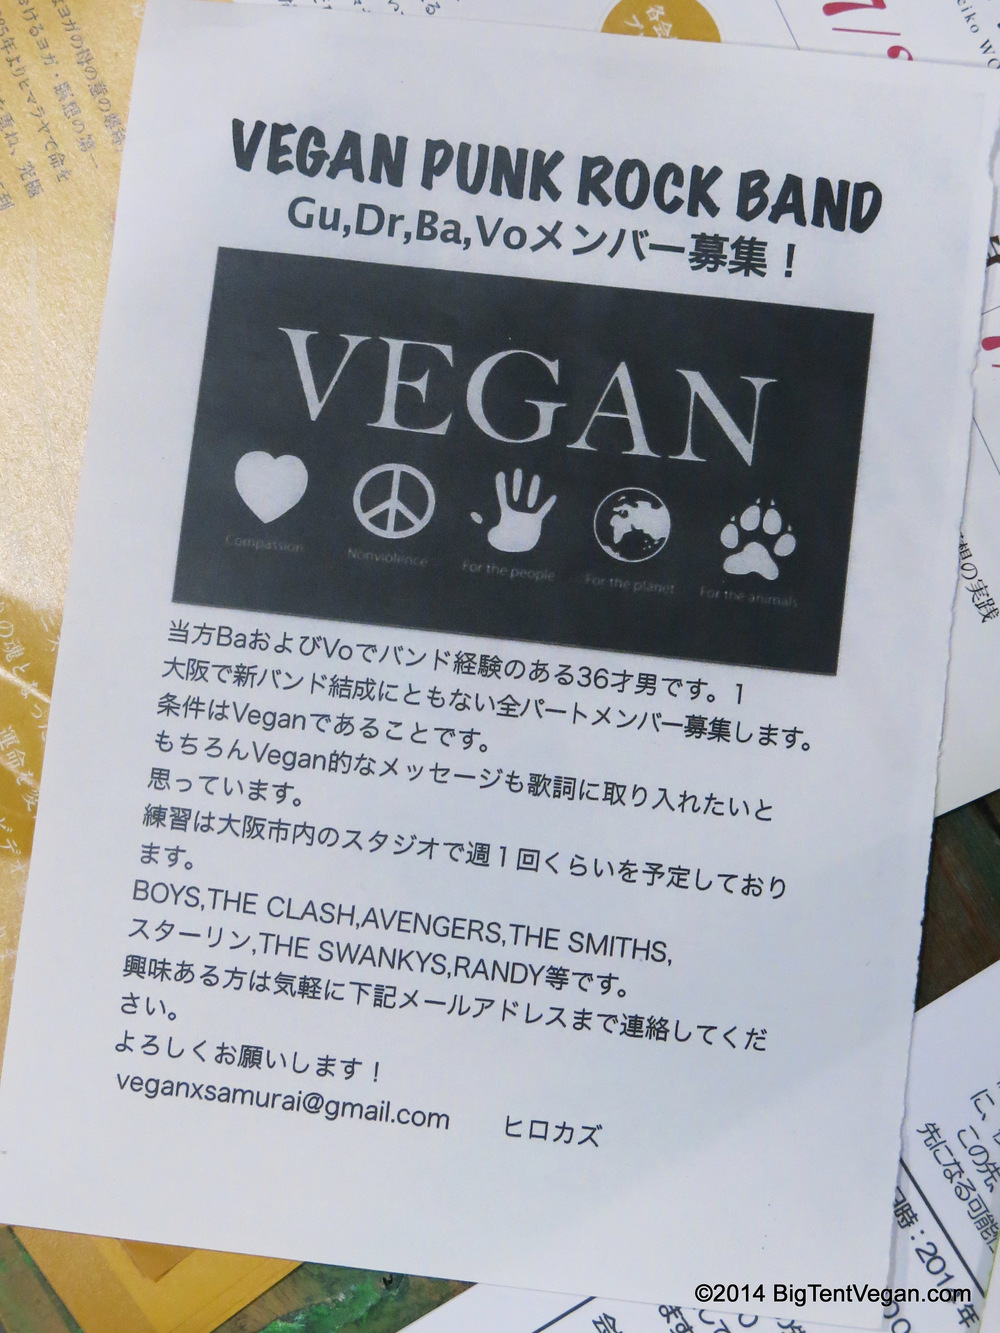 Flyer we spotted at Vegans Café and Restaurant for a Vegan Punk Rock Band